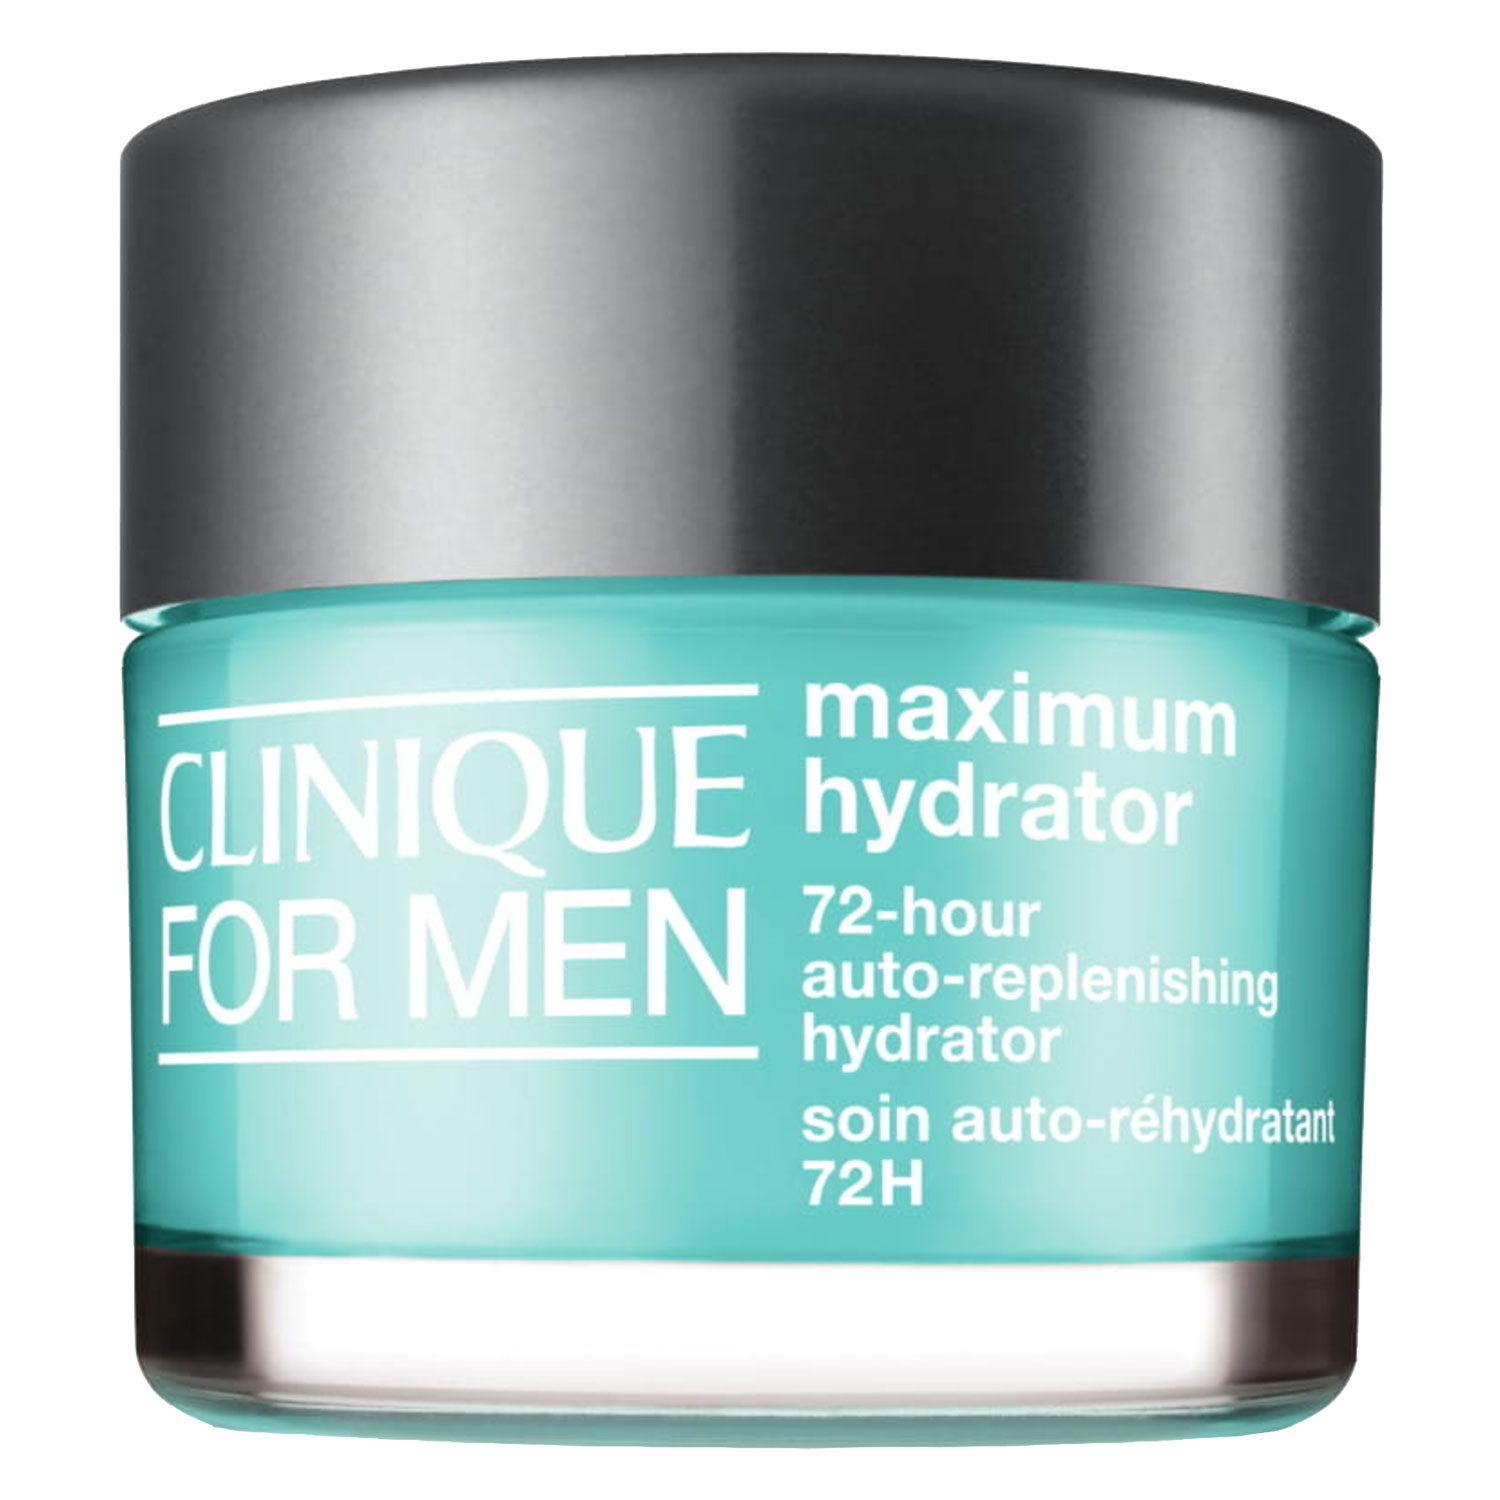 Clinique For Men - Maximum Hydrator 72-Hour Auto-Replenishing Hydrator - 50ml